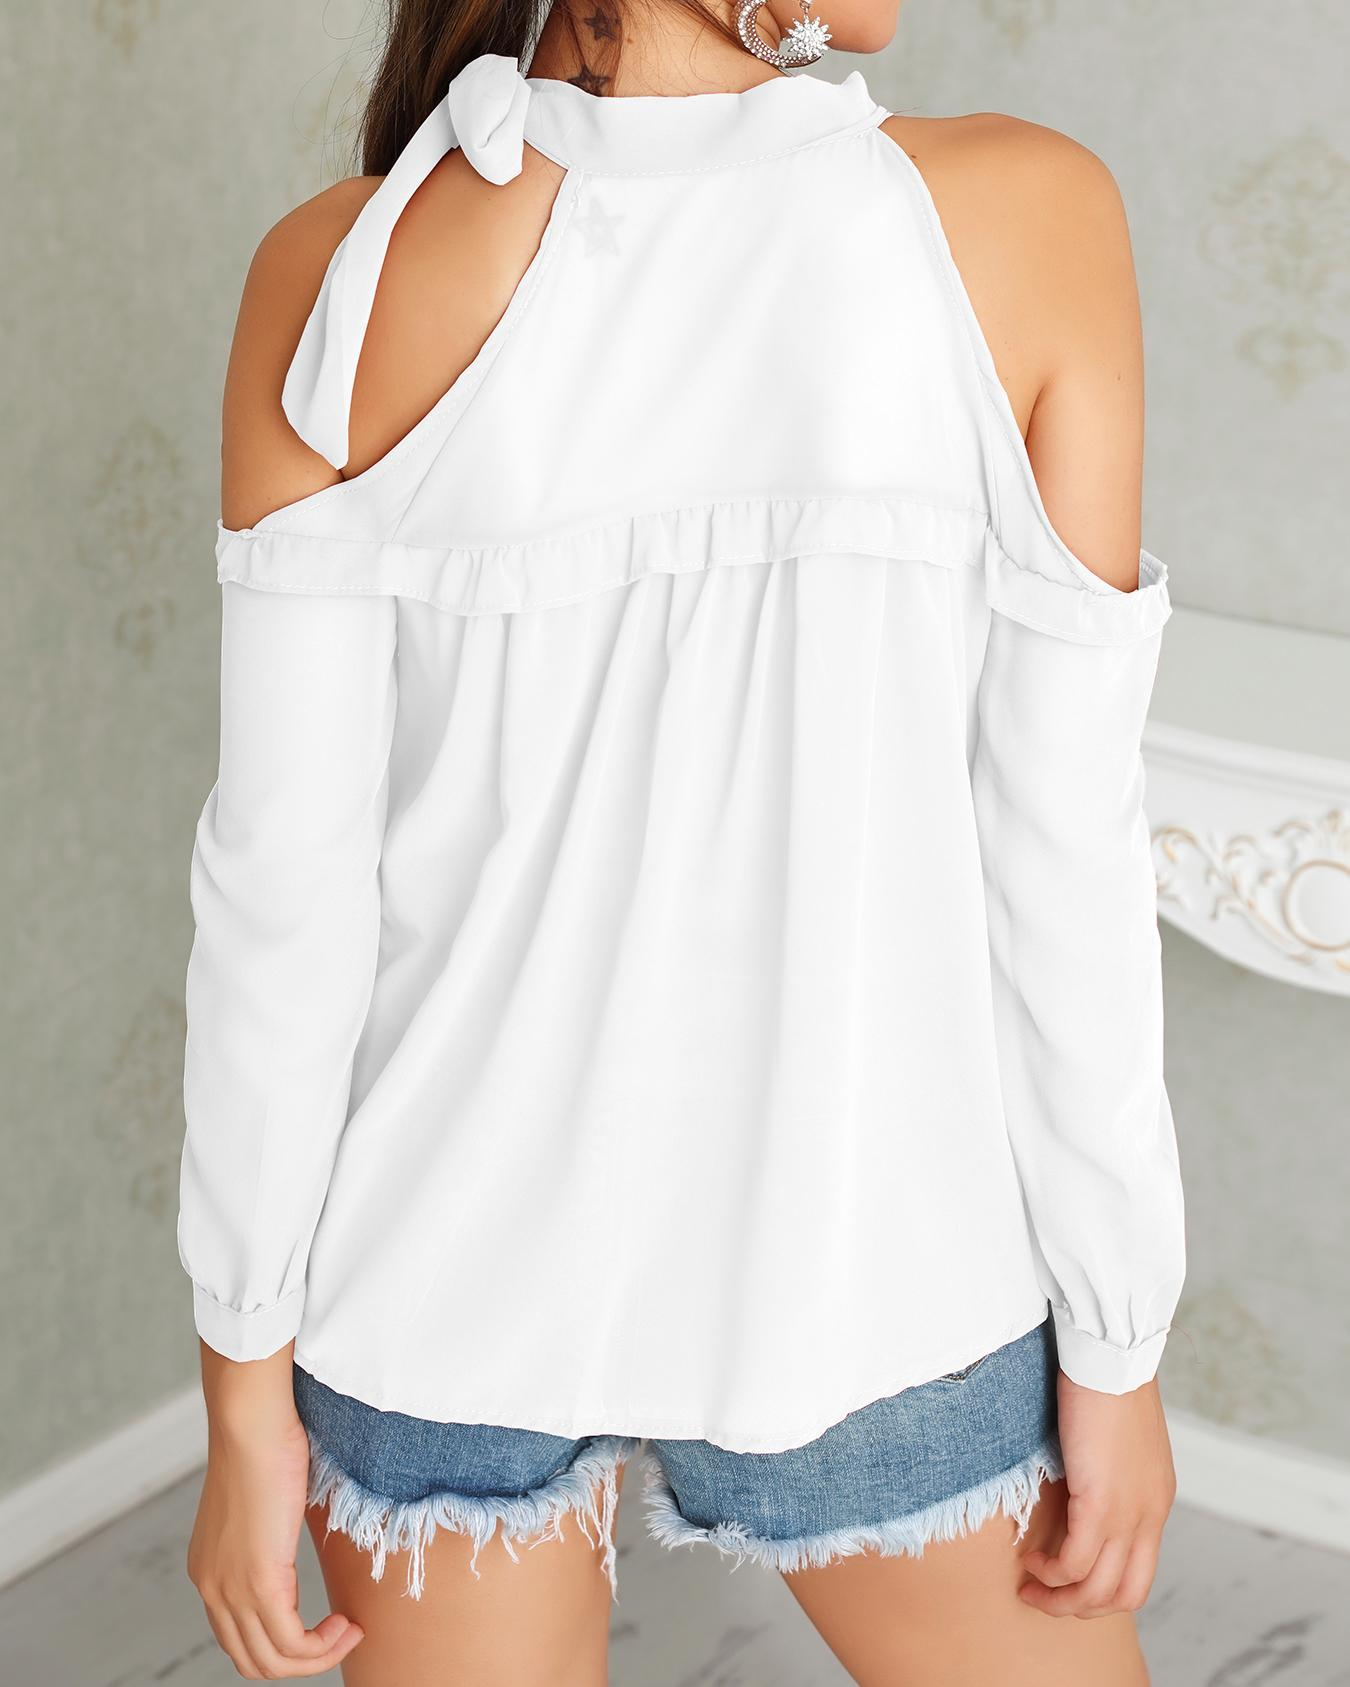 Tied Neck Cold Shoulder Frills Chiffon Blouse